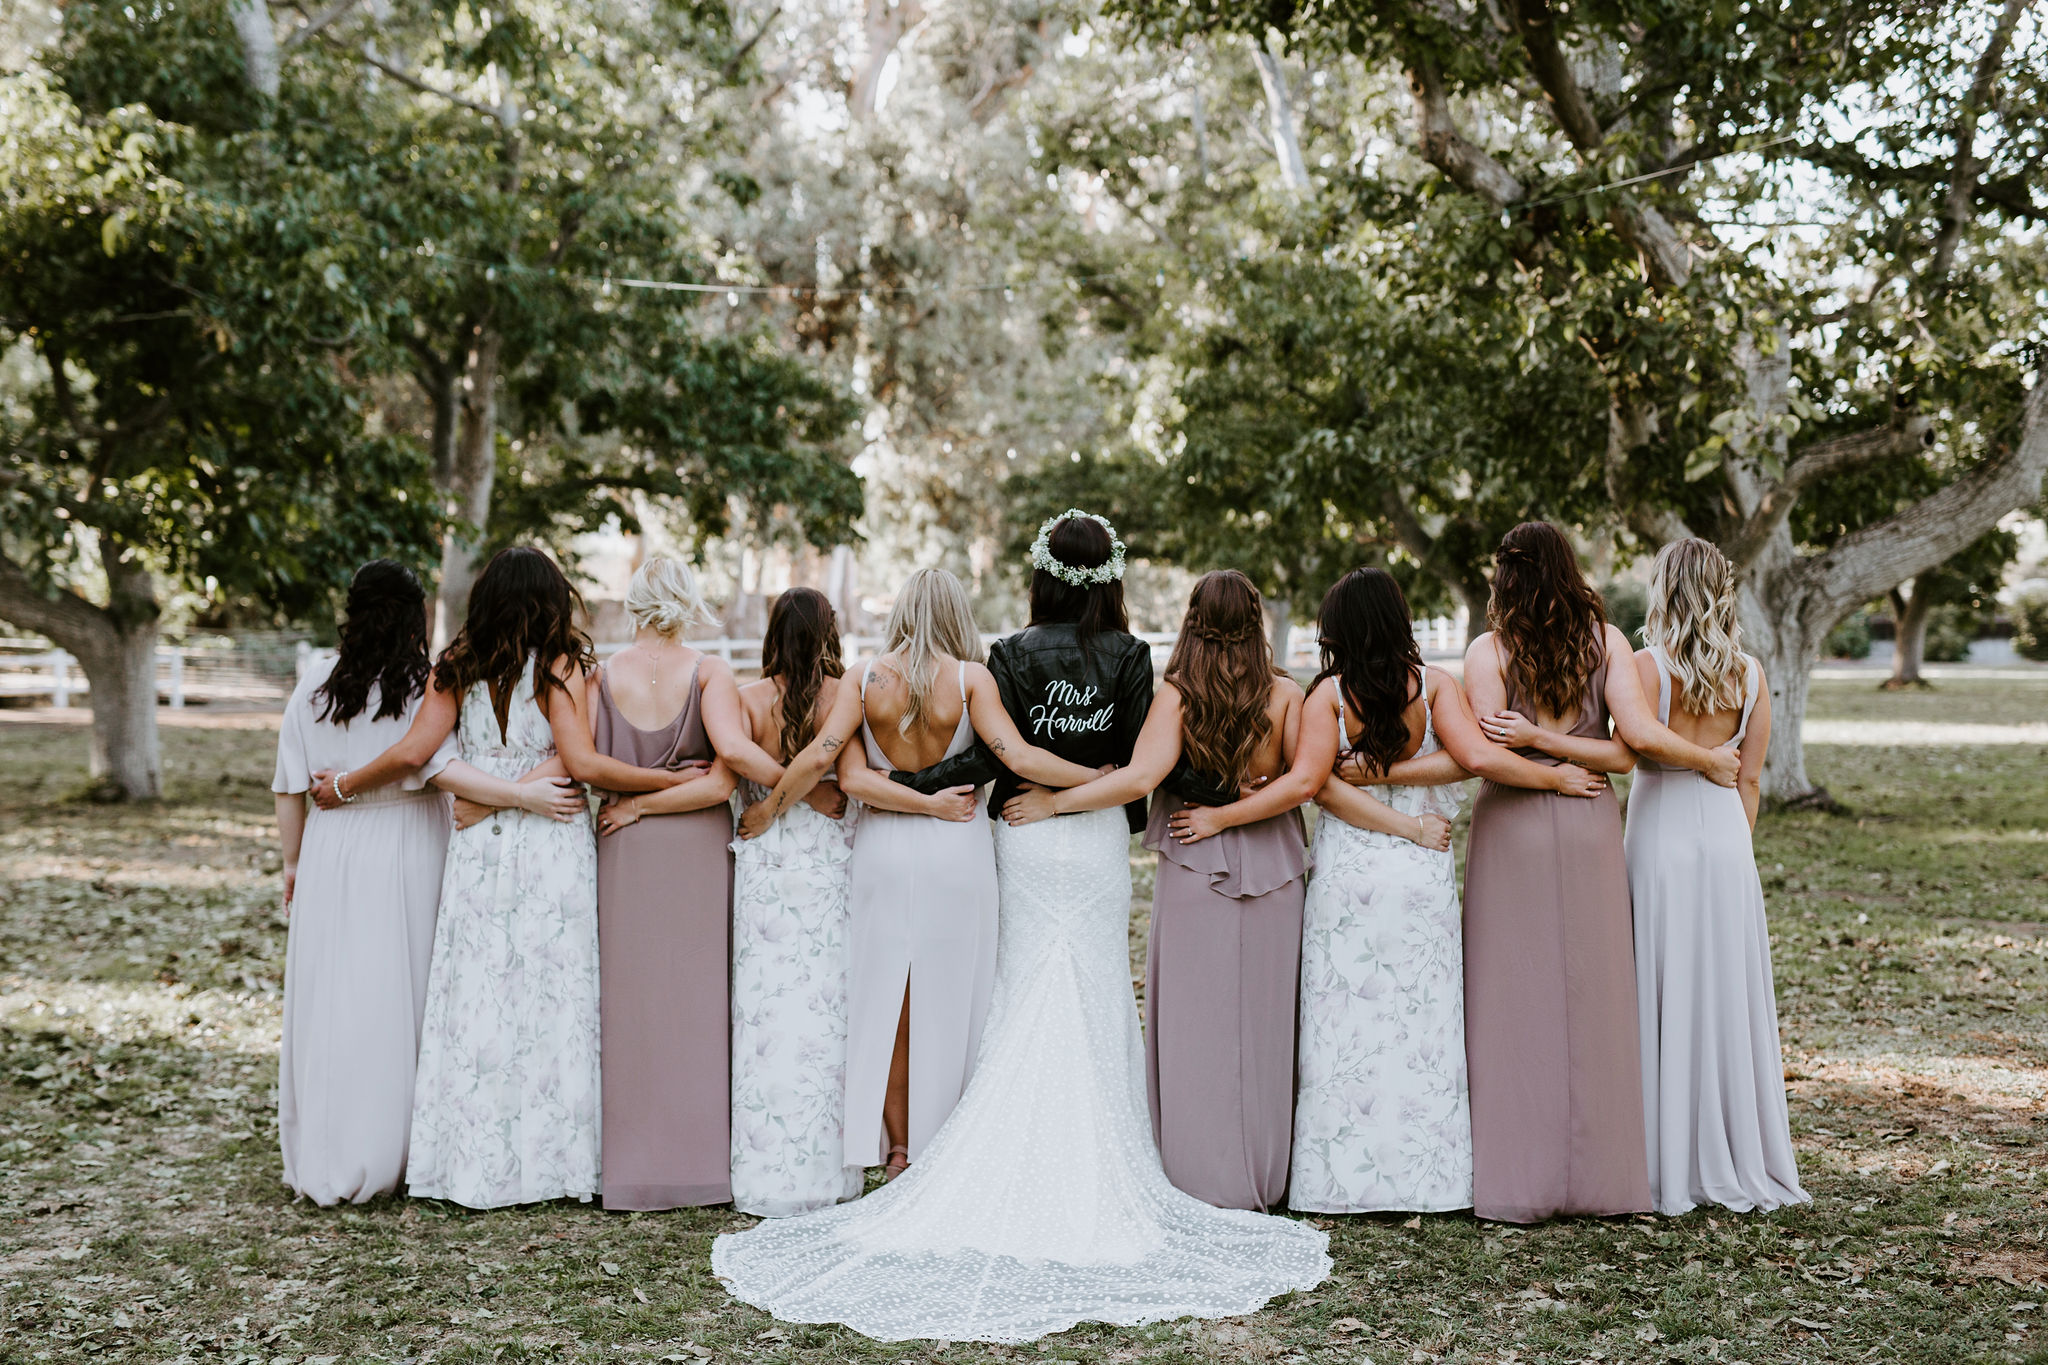 WalnutGroveWedding_Geoff&LyndsiPhotography_Casie&Matt_Bridesmaids35.jpg